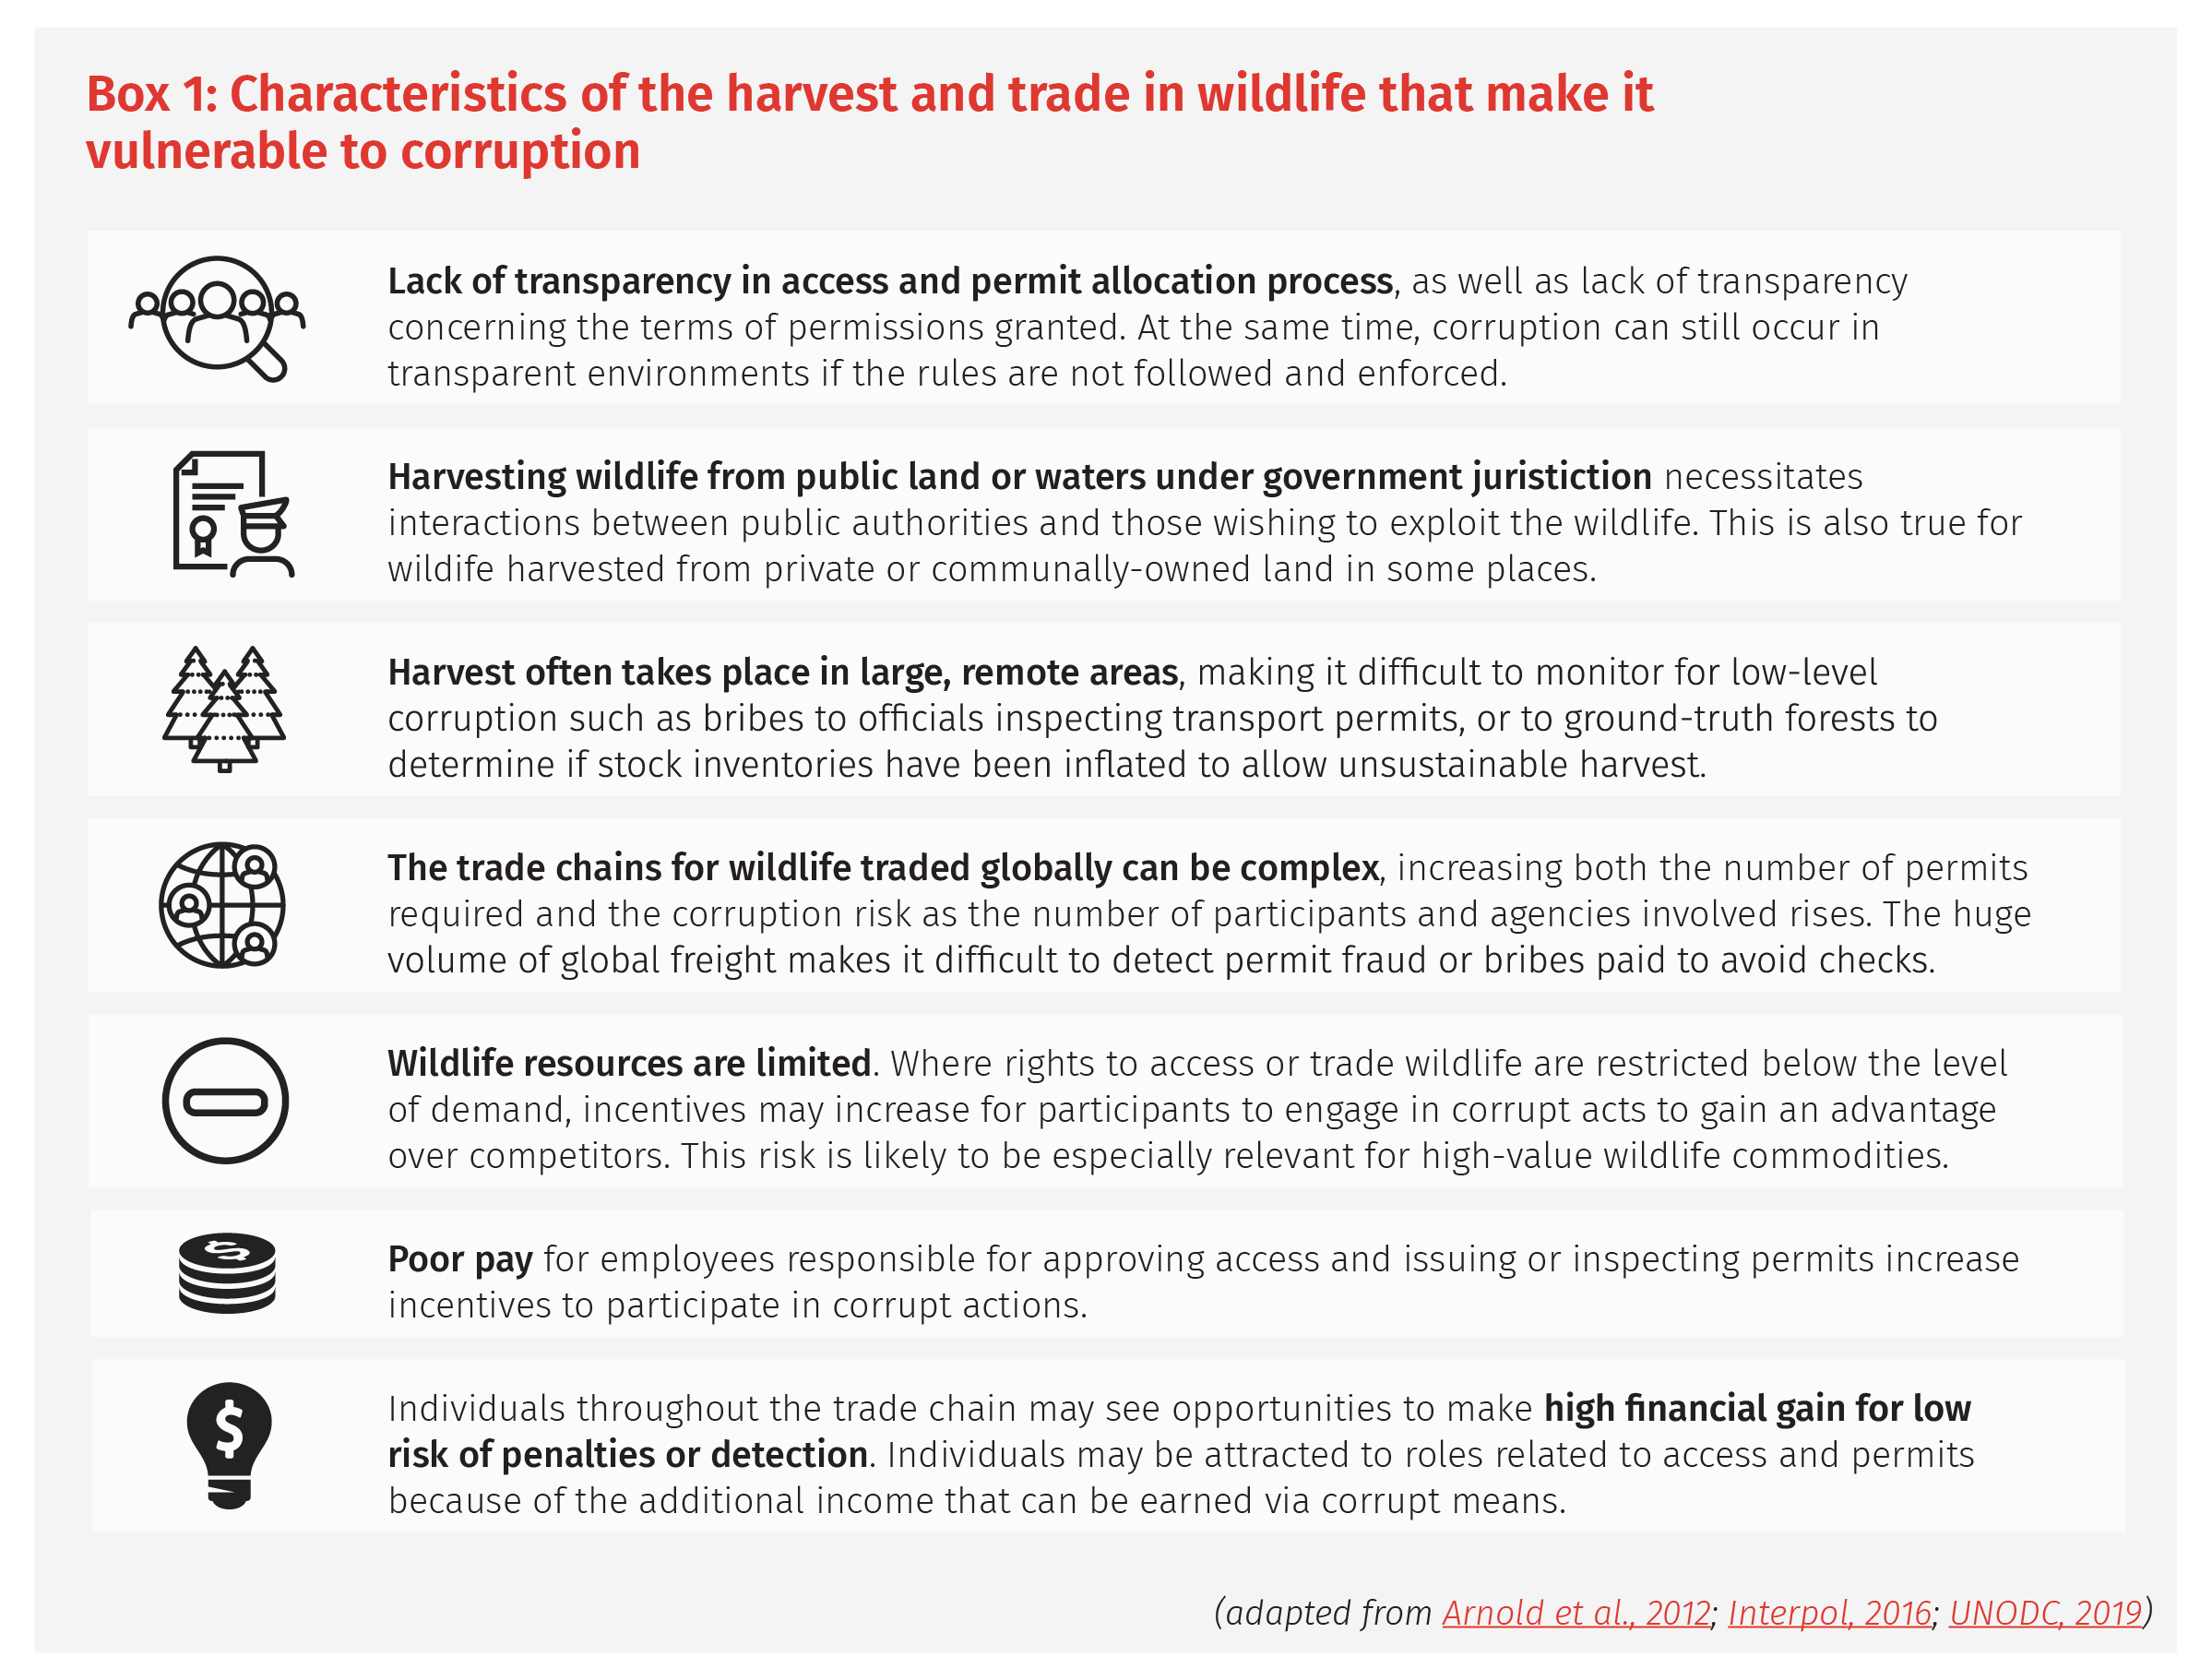 Box 1: Characteristics of the harvest and trade in wildlife that make it vulnerable to corruption